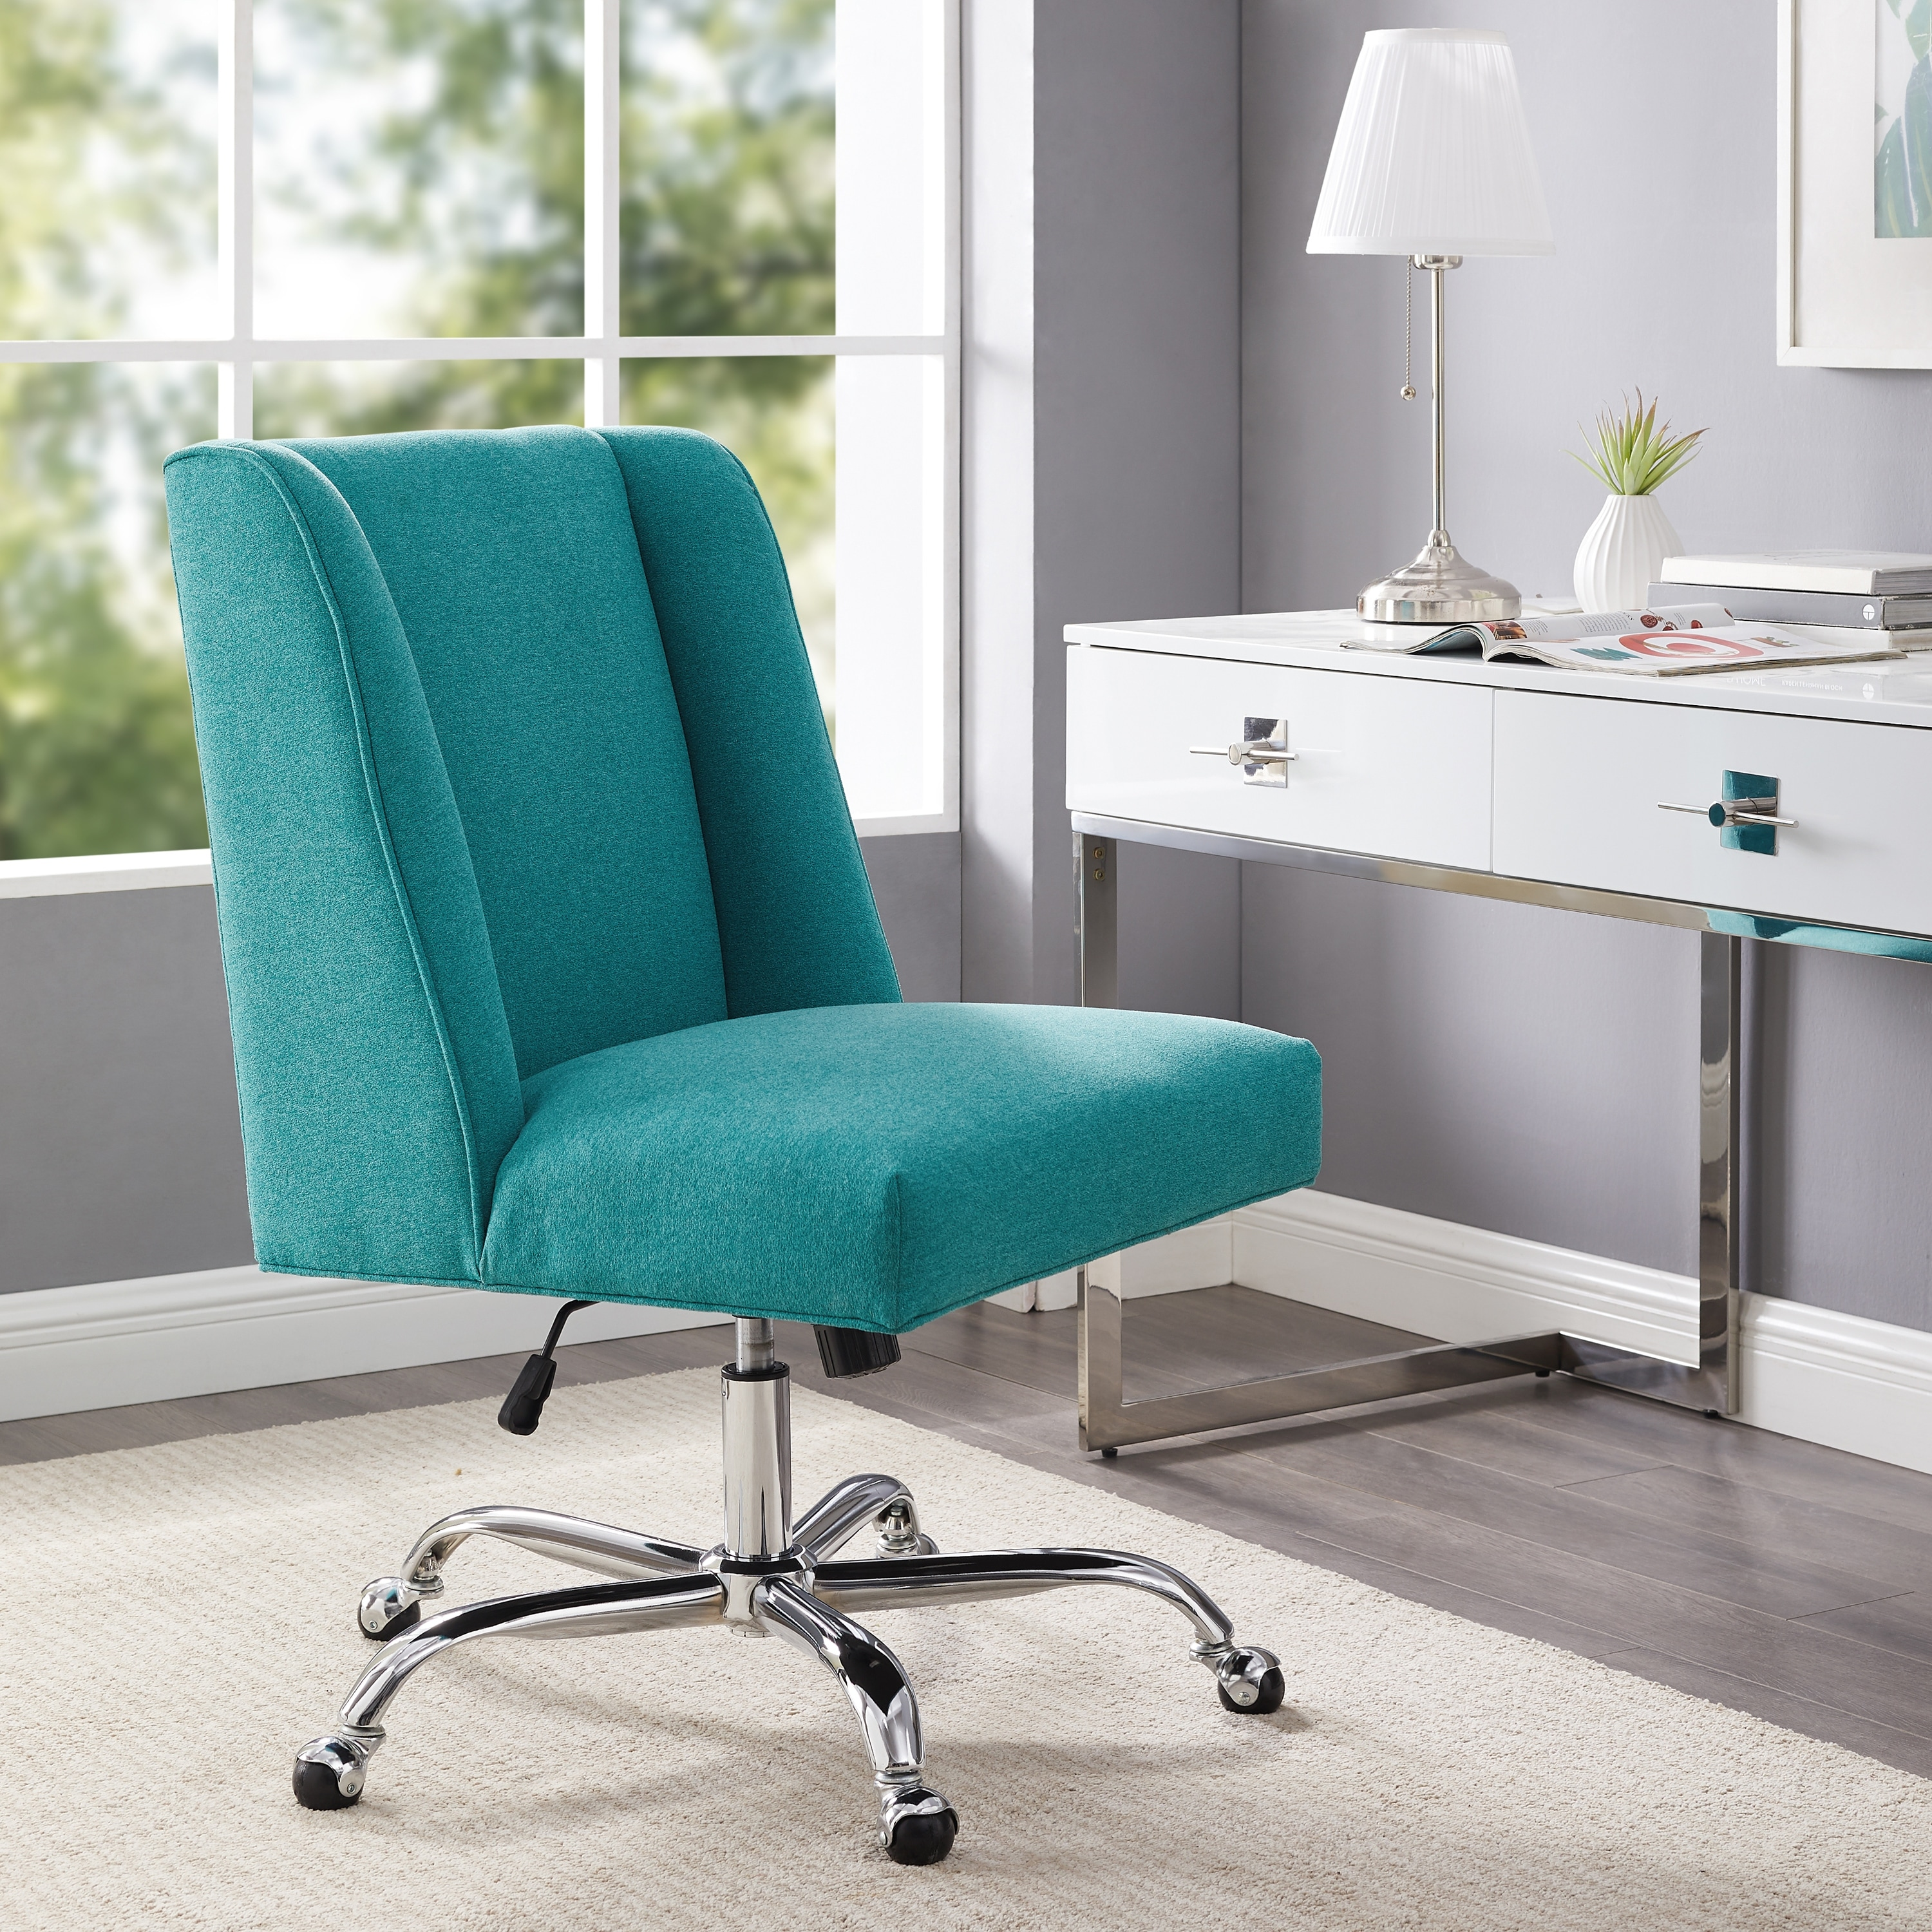 Shop Violet Home Office Chair Overstock 20235845